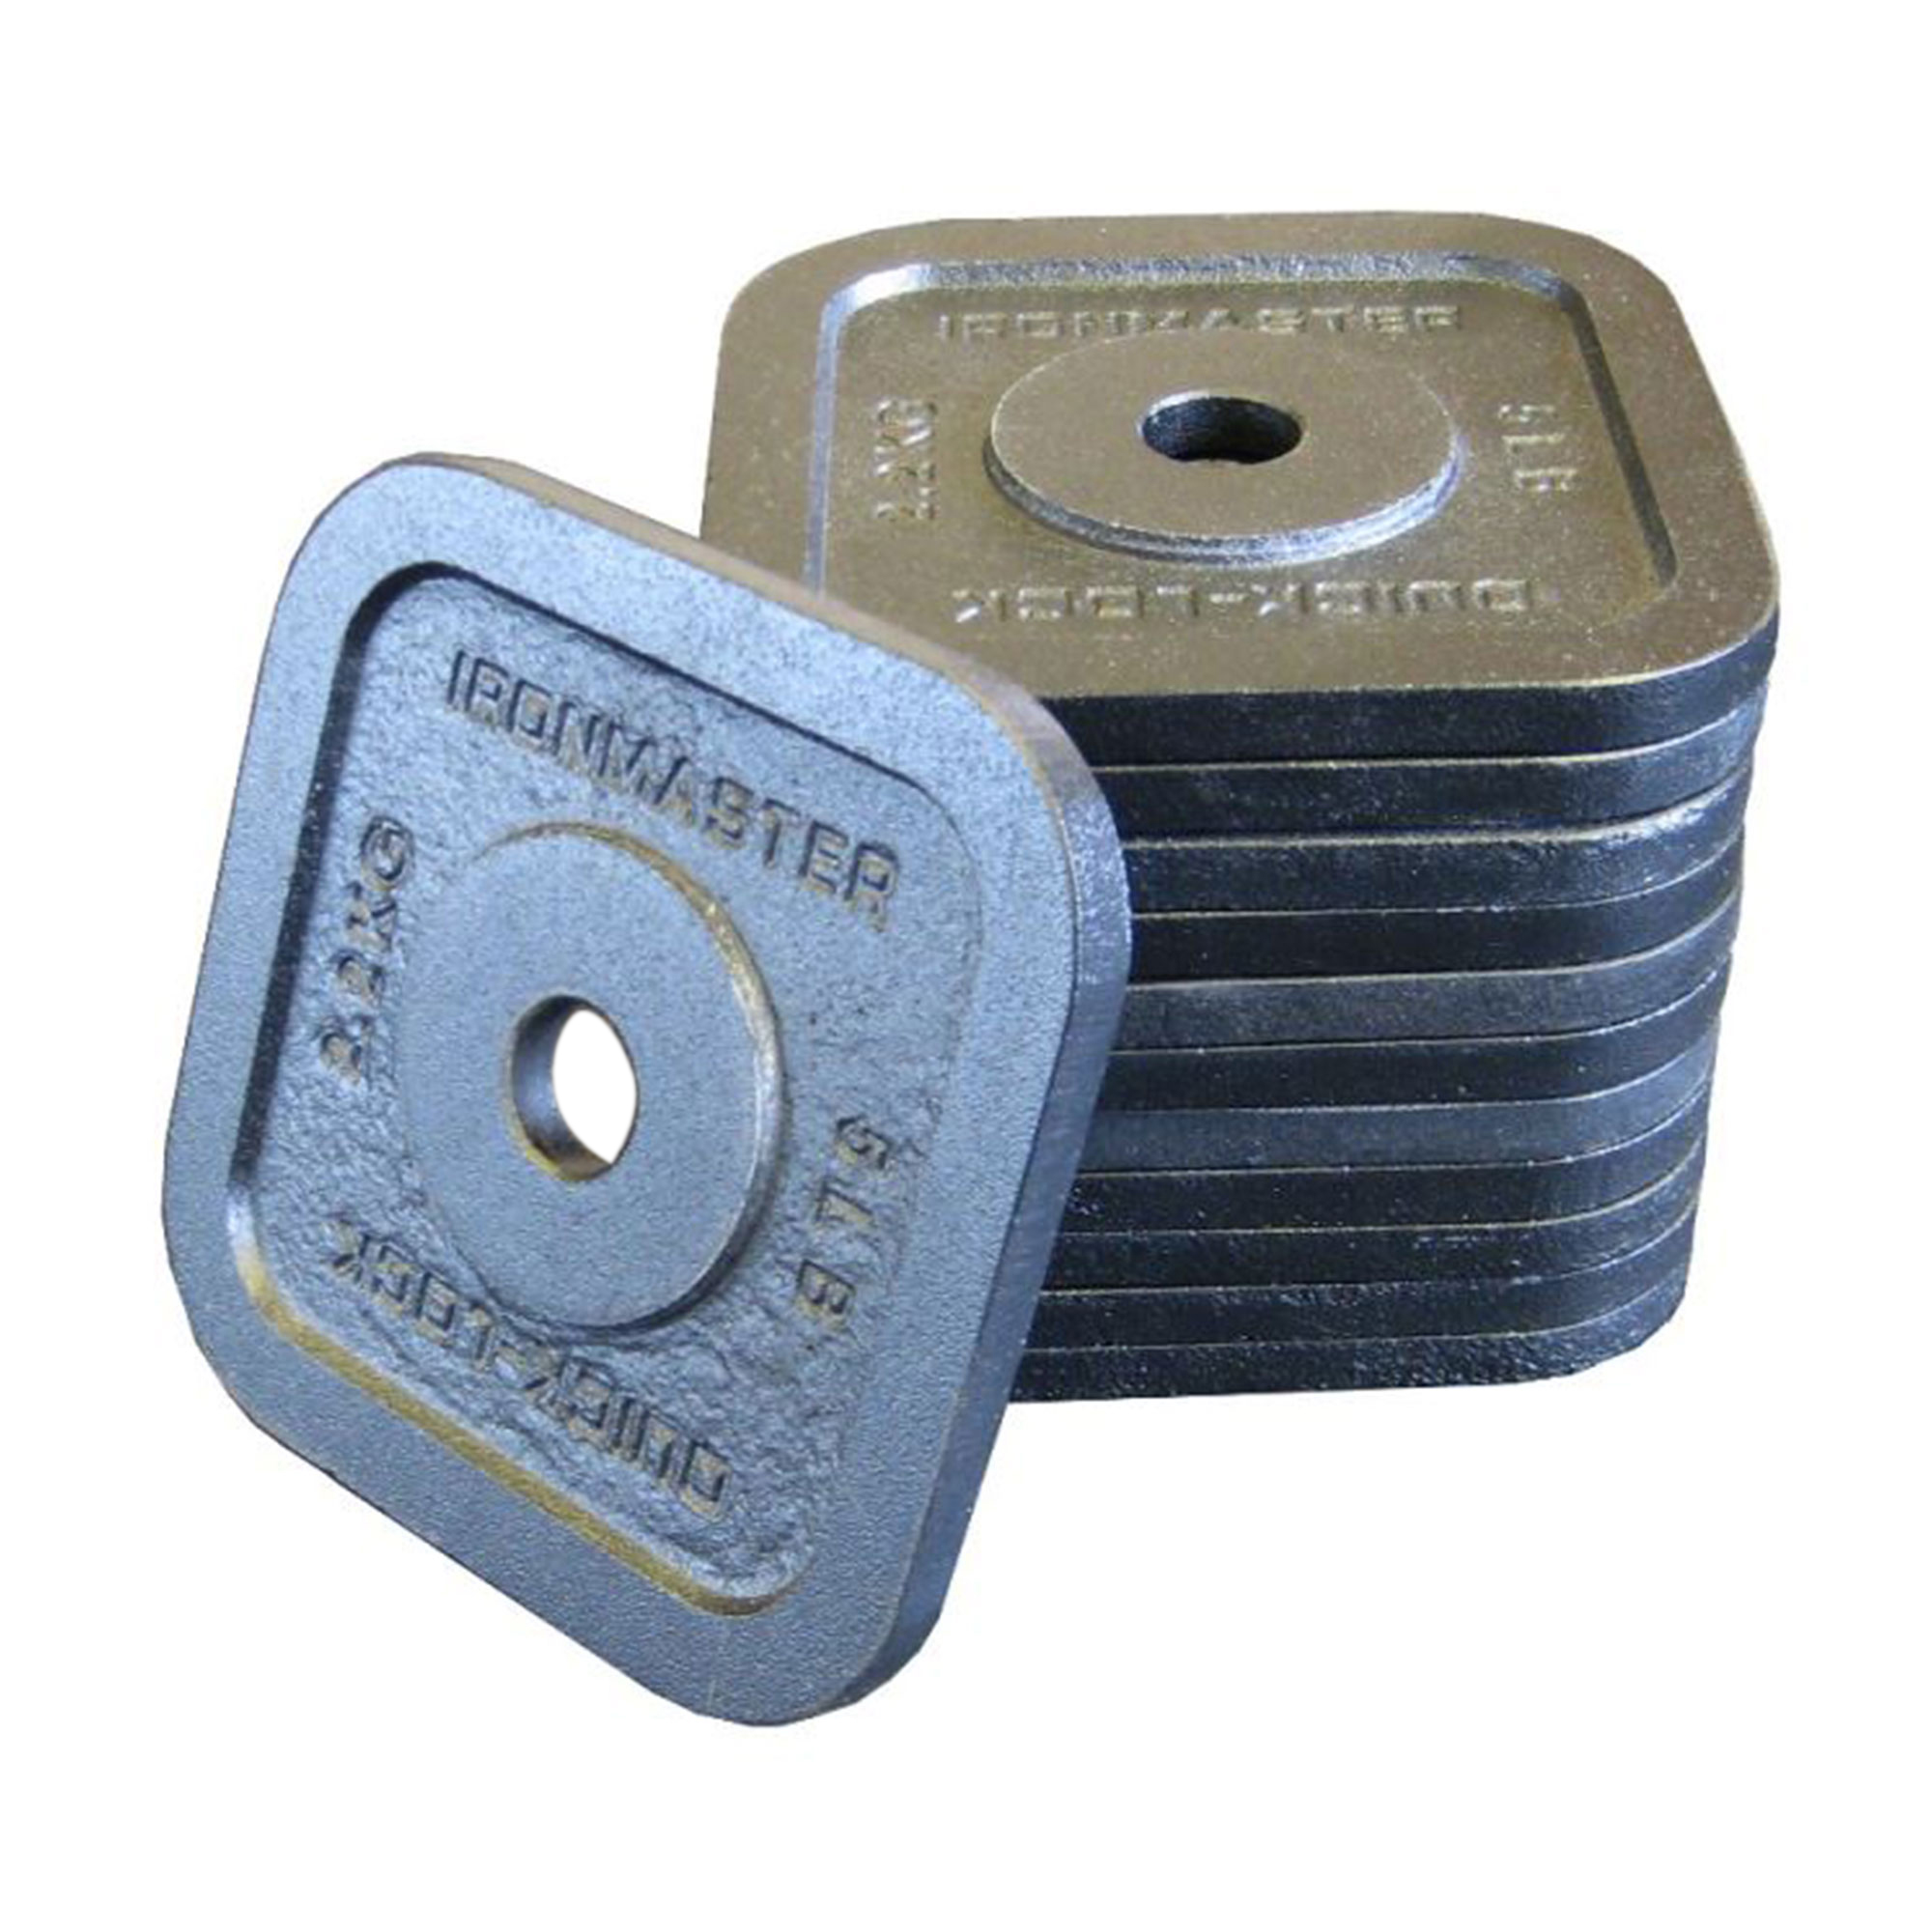 Ironmaster Adjustable Dumbbells Used: 75 Lbs (34 Kg) Quick-Lock Dumbbell Upgrade Kit